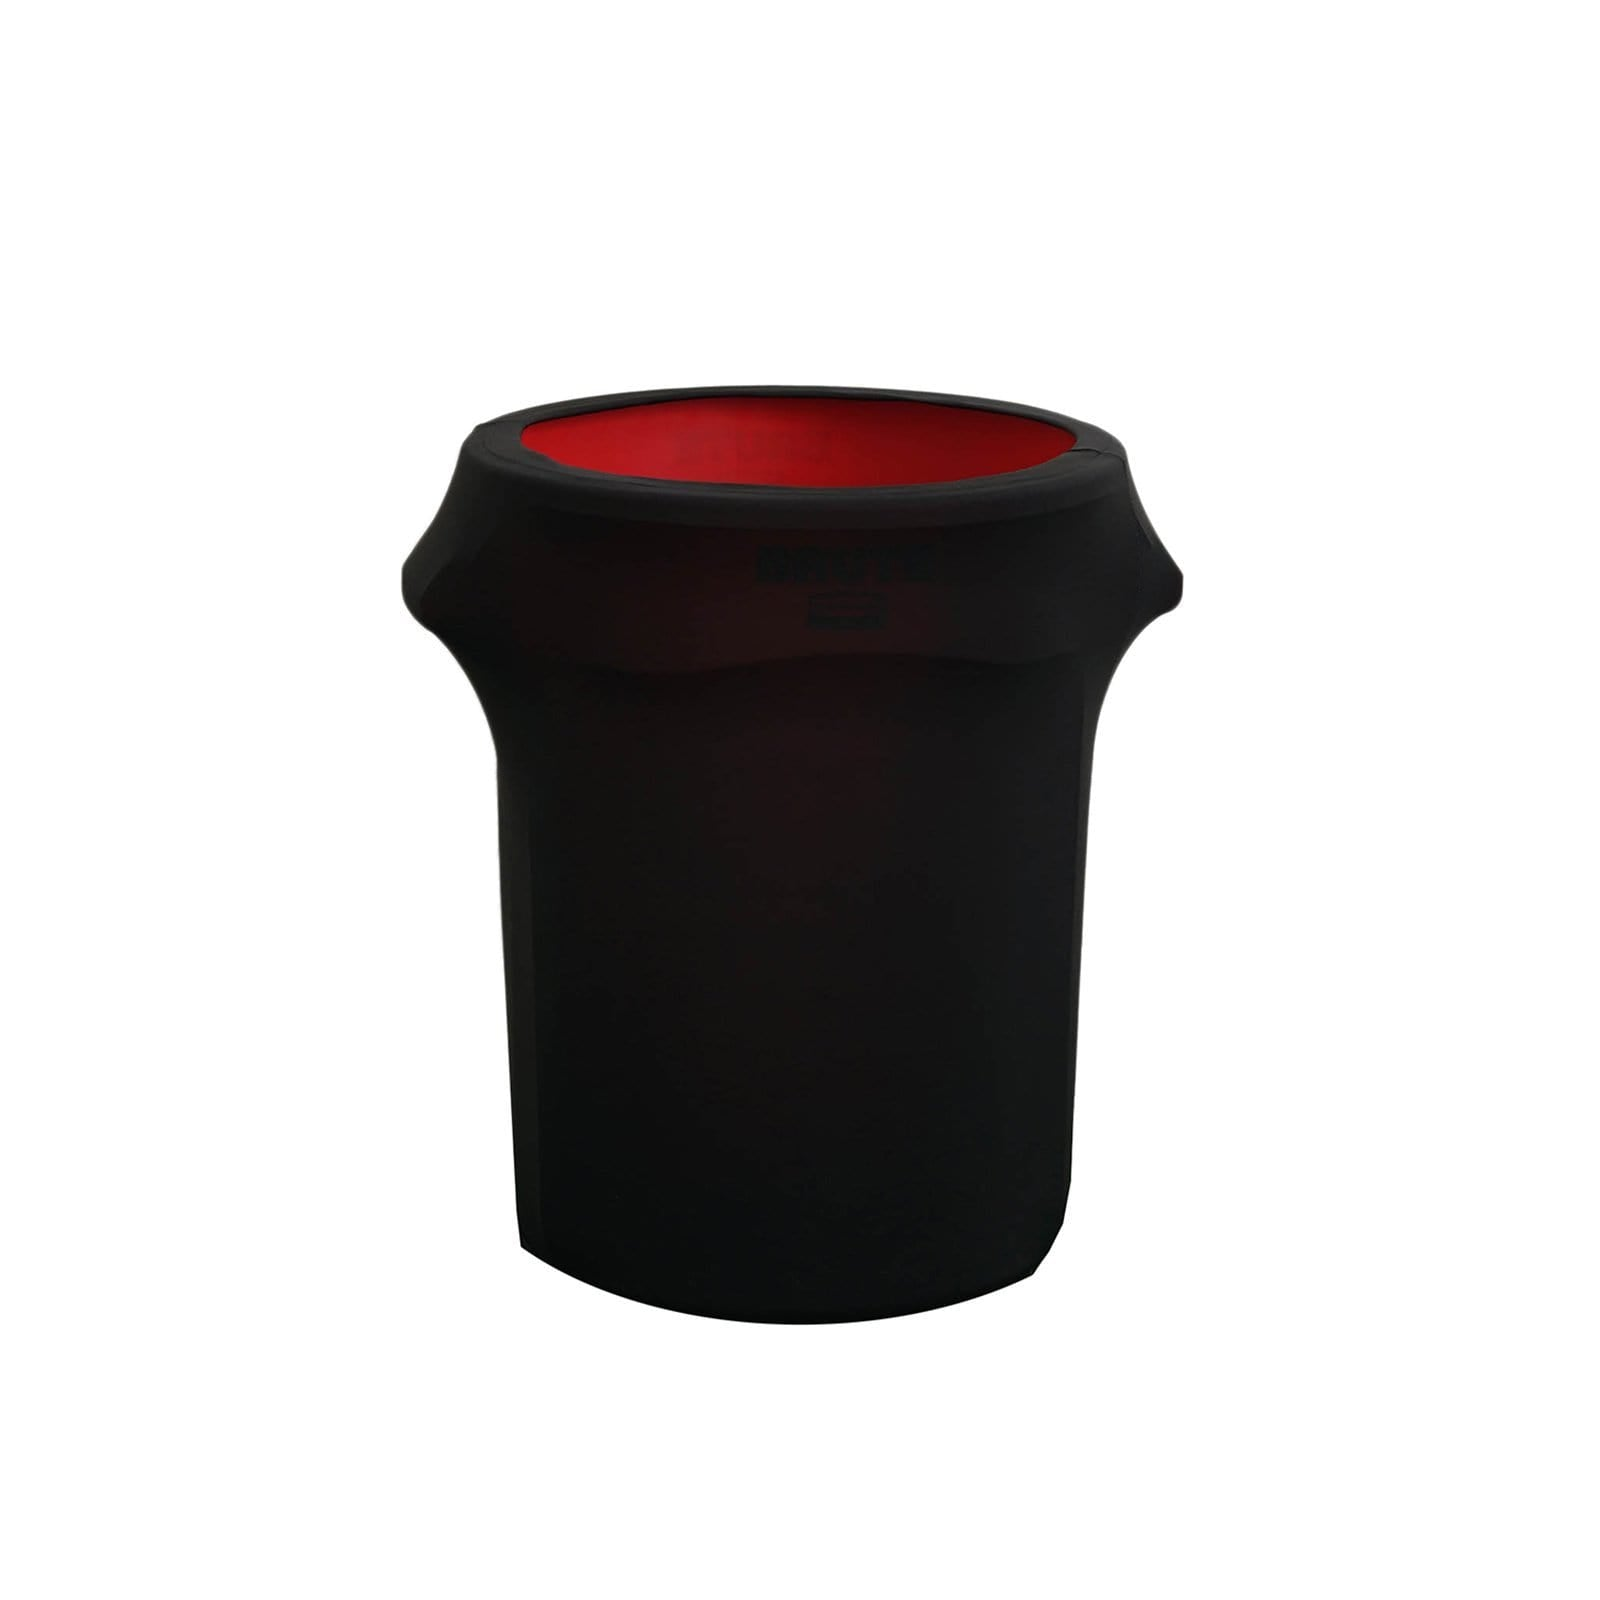 24-40 gallons Black Round Stretchable Spandex Trash Can Cover